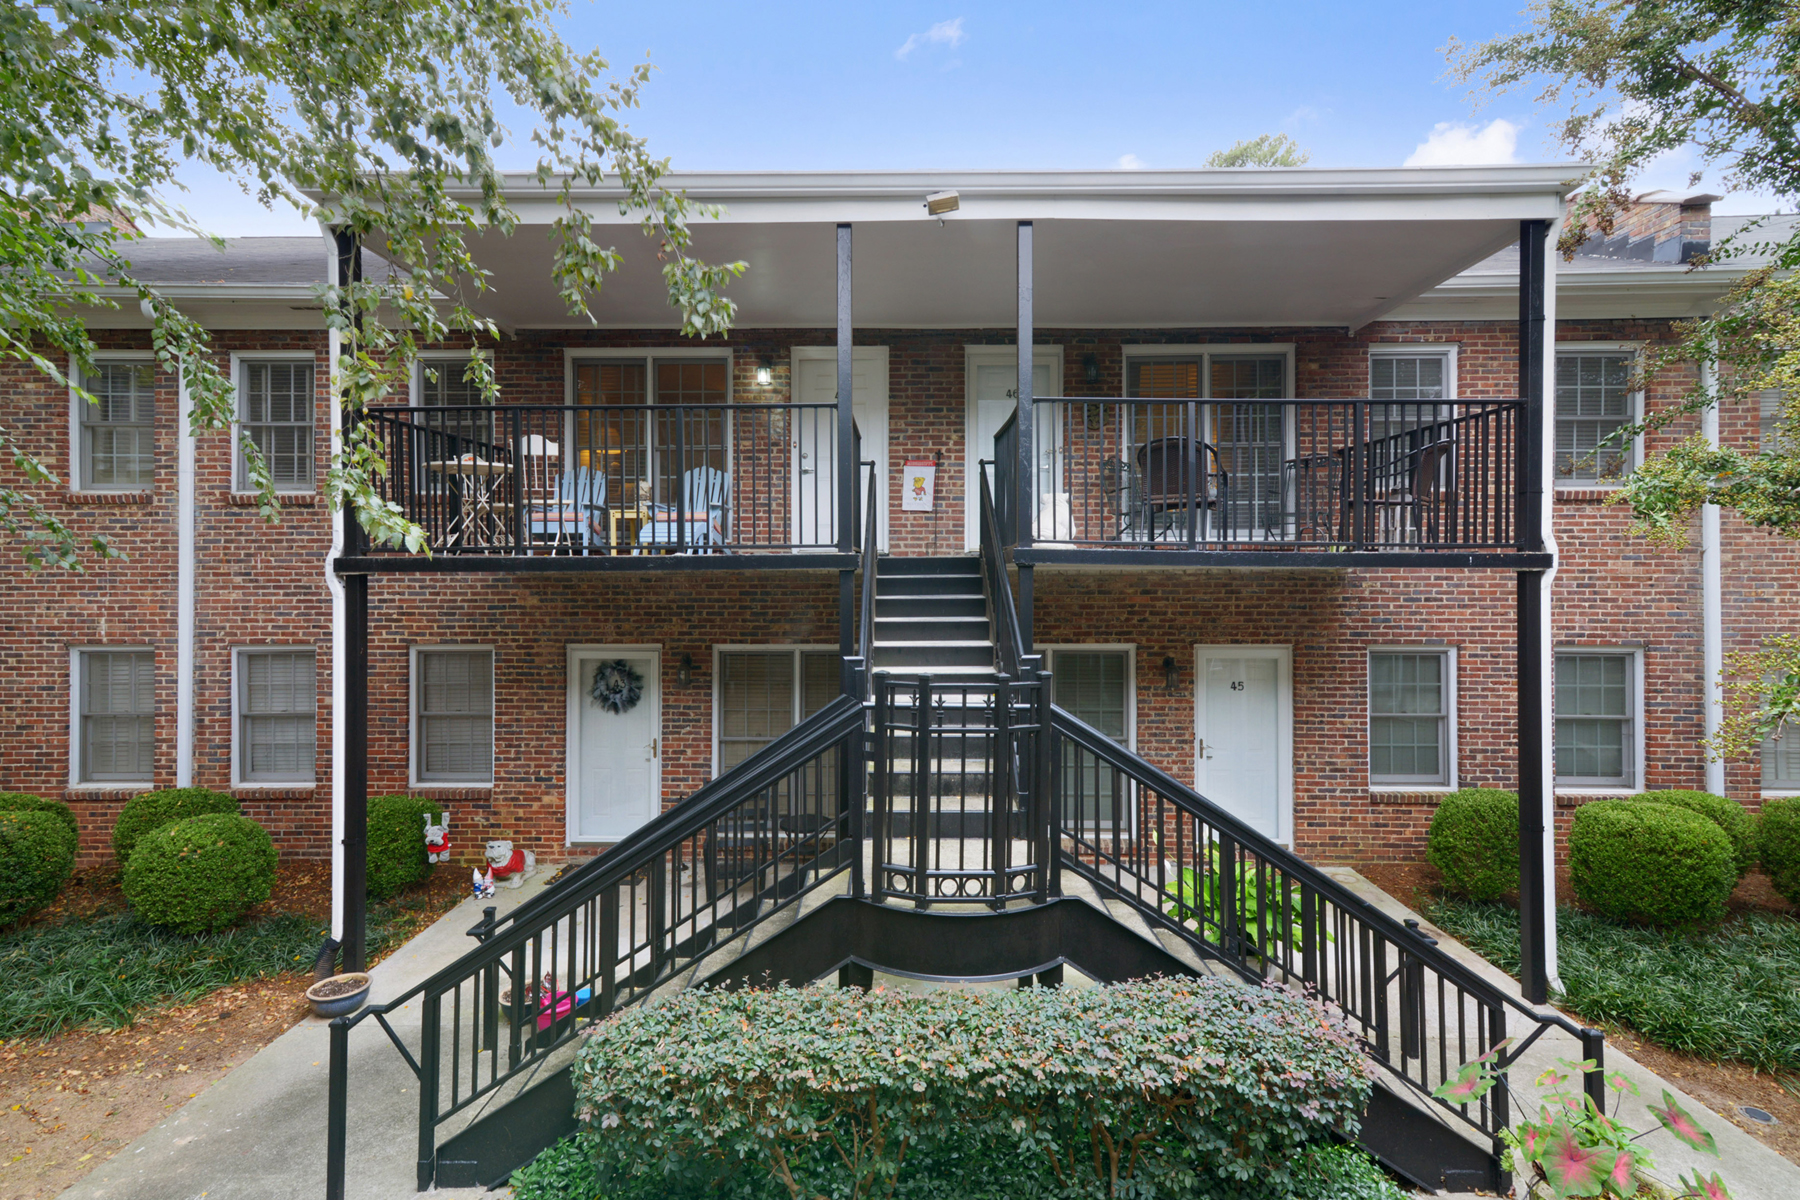 Кондоминиум для того Продажа на Move In Ready Condo In Peachtree Orleans 3675 Peachtree Road Unit 44 Atlanta, Джорджия 30319 Соединенные Штаты